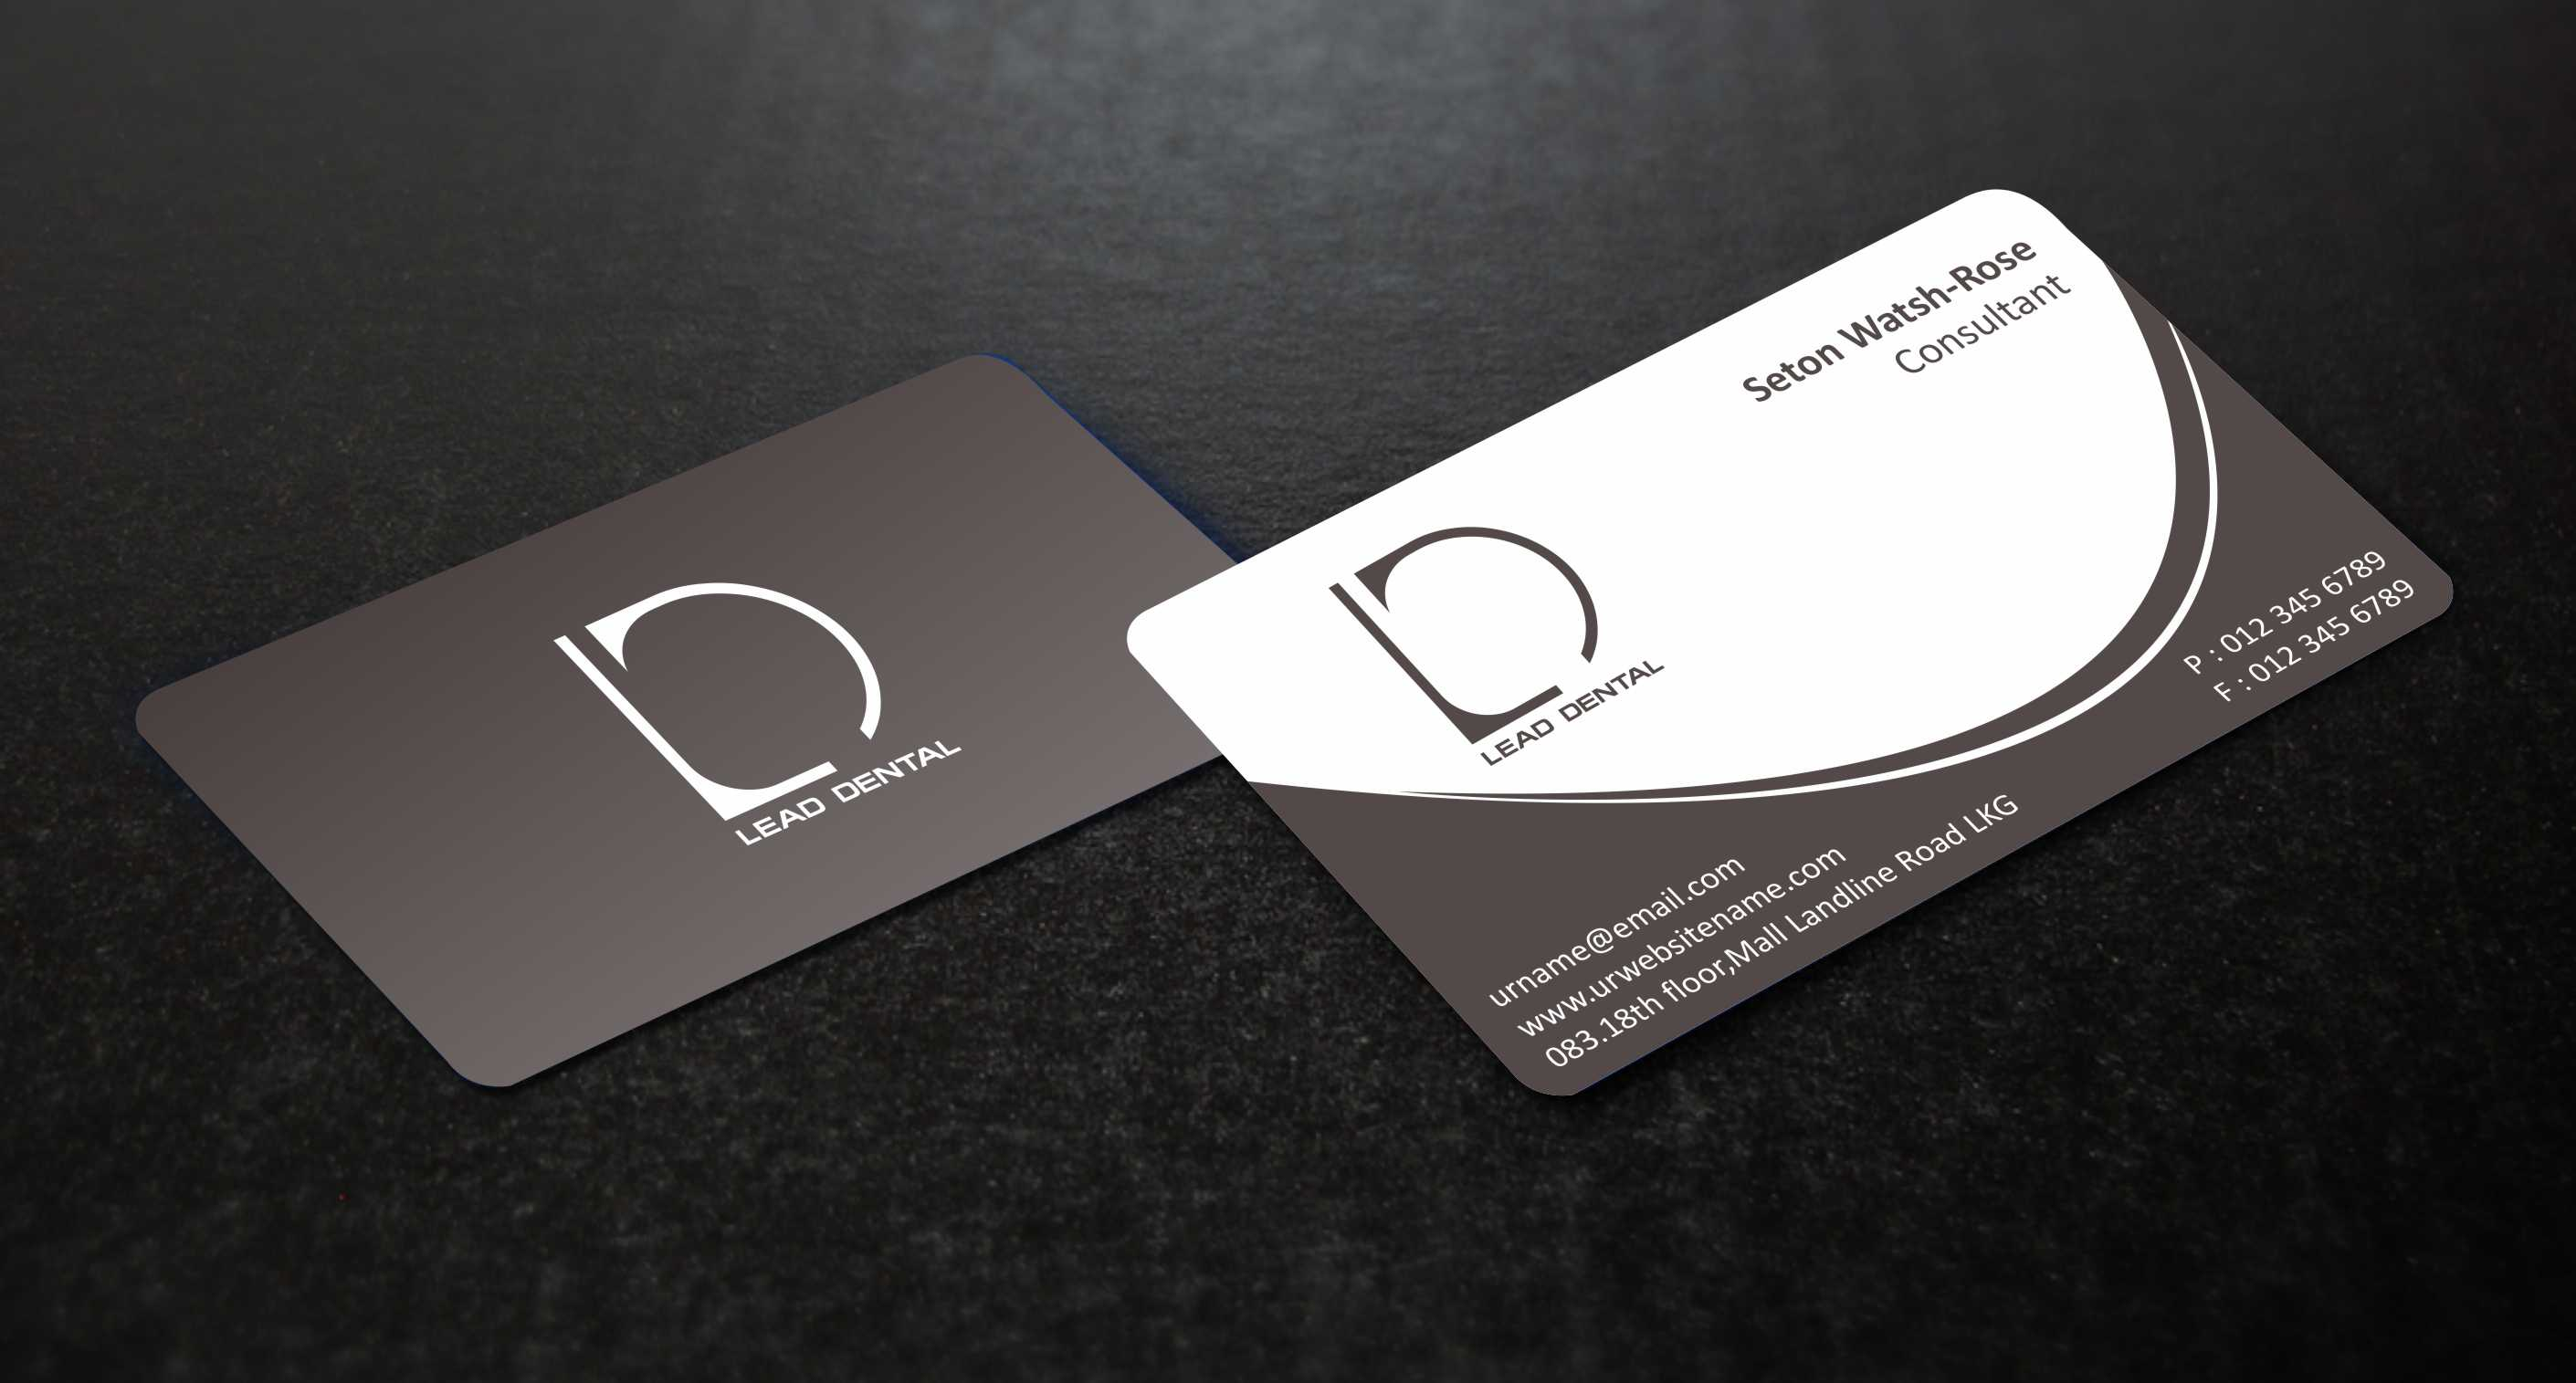 Business Card and Staionery designs for a Multi-specialty Dental office - Health